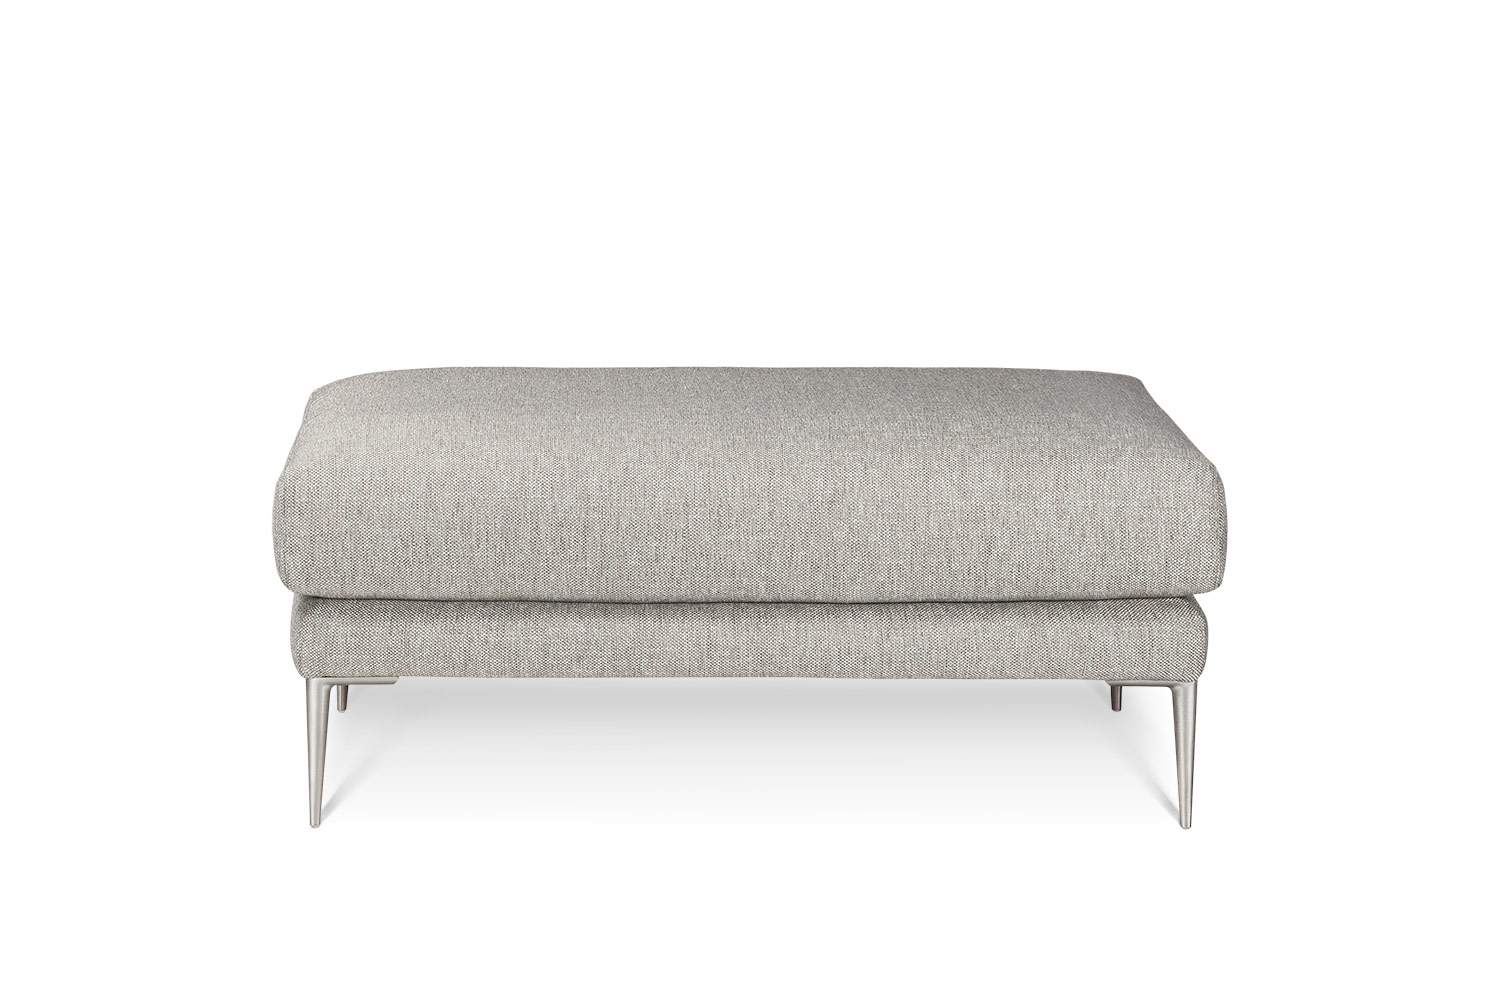 In picture Lorenzo Jumbo footstool; fabric: Solution 60; leg 15 Stainless Steel.